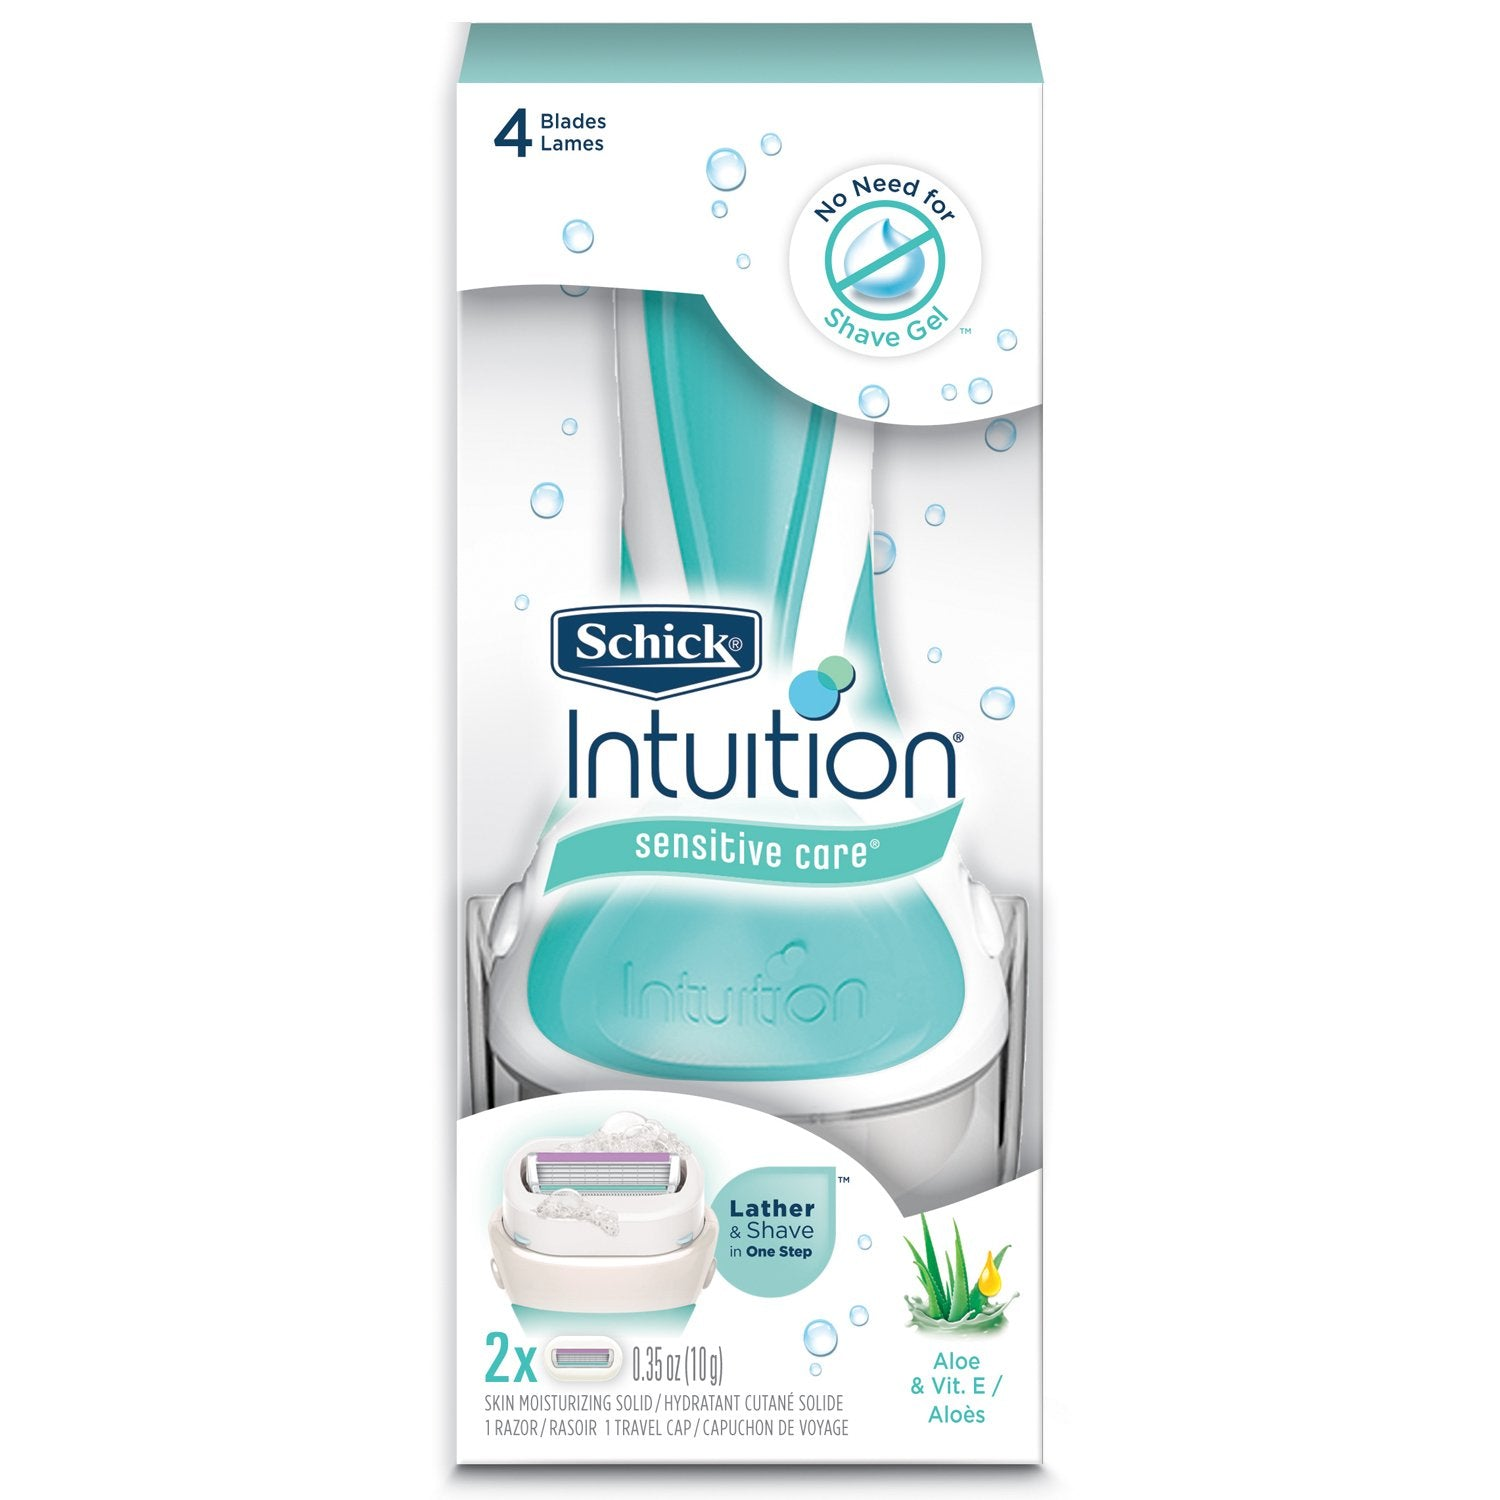 SCHICK Intuition Lather and Shave Sensitive Care 4 blades